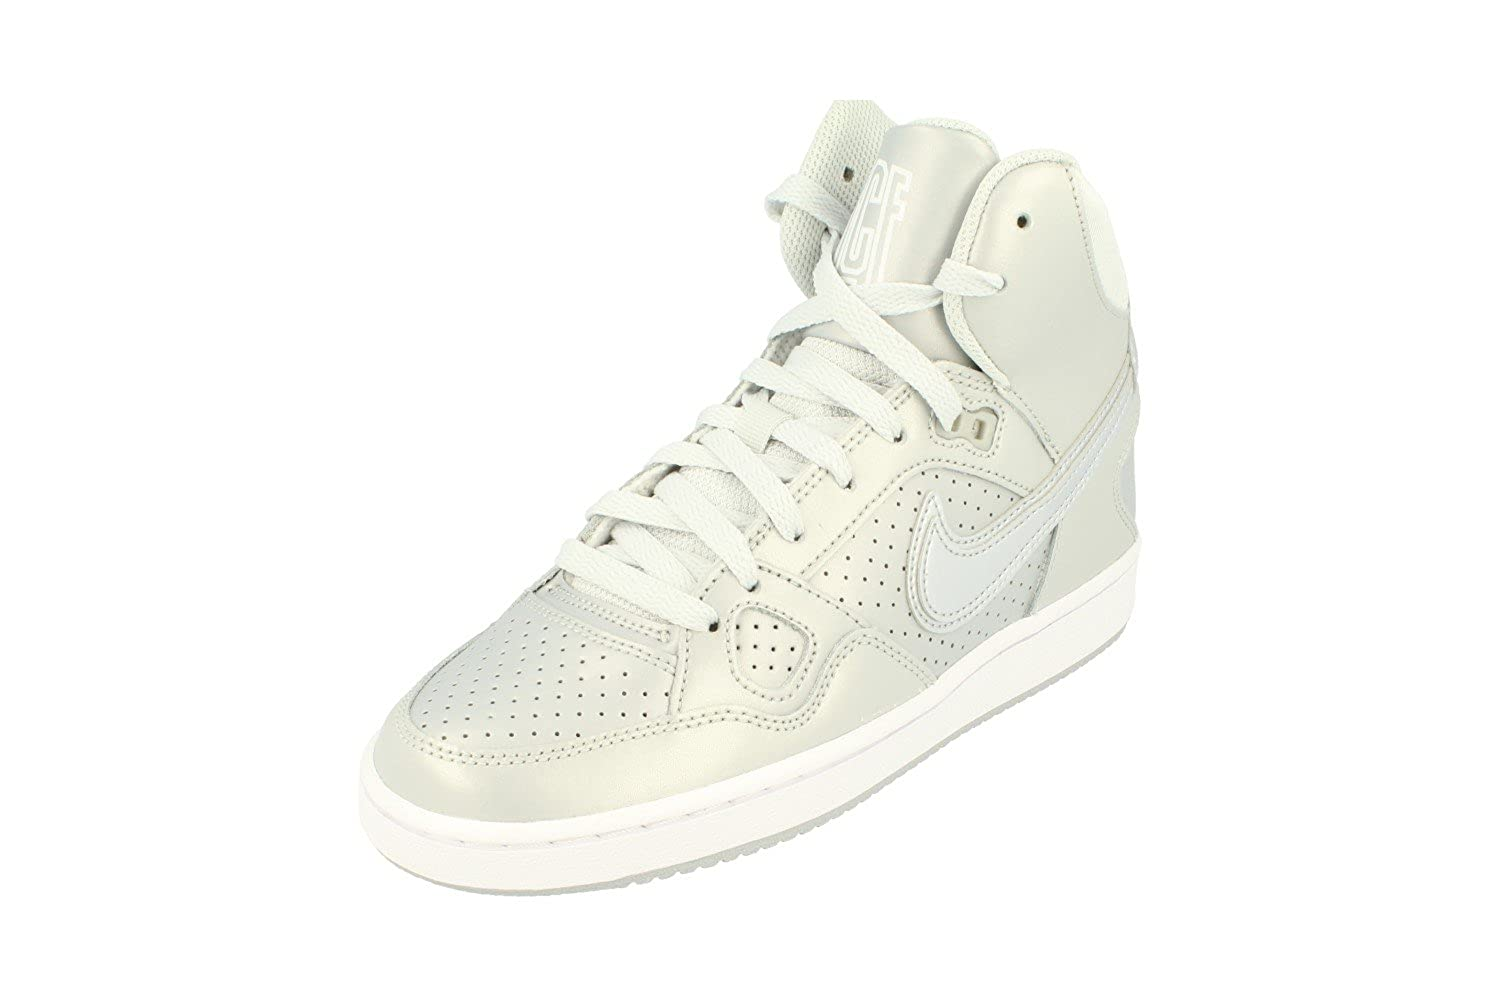 timeless design c1a81 a0ba3 Nike Women s Son Of Force Mid Mid-Top Leather Basketball Shoe  Nike   Amazon.ca  Shoes   Handbags